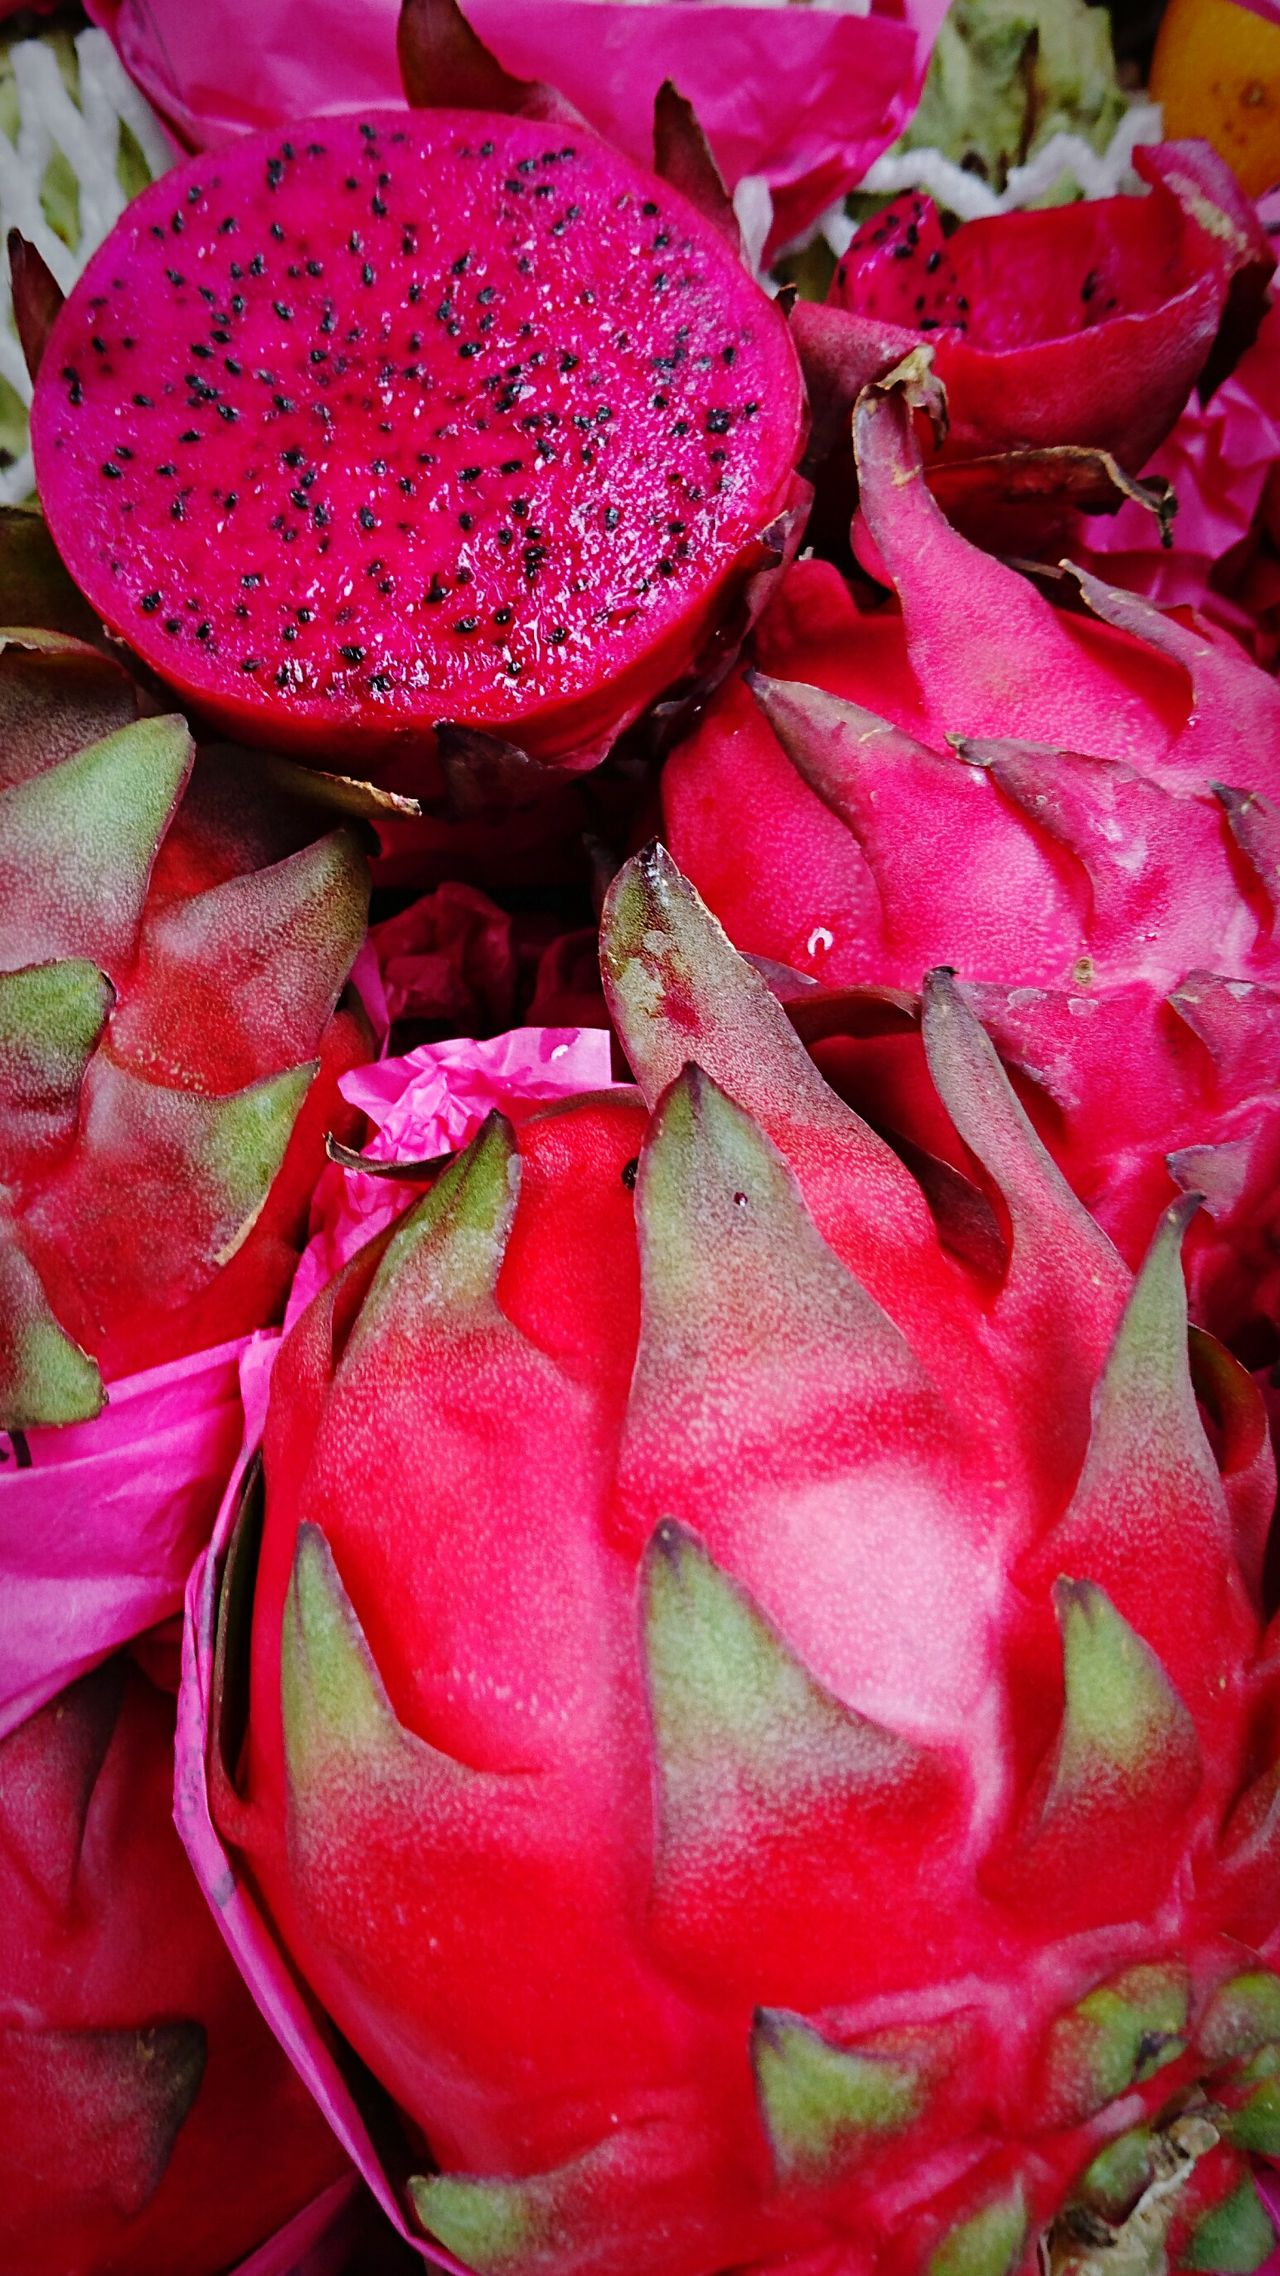 Exotic fruits: Red Pitaya. Market For Sale Variation Freshness Backgrounds Photograph Photographer Photography Photo Eye4photography  Eyeemphotography Sony Xperia Sony Colors Malephotographerofthemonth Pitaya Exotic Exotic Fruit Exotic Fruits Close-up Healthy Eating Ready-to-eat Food Market Freshness